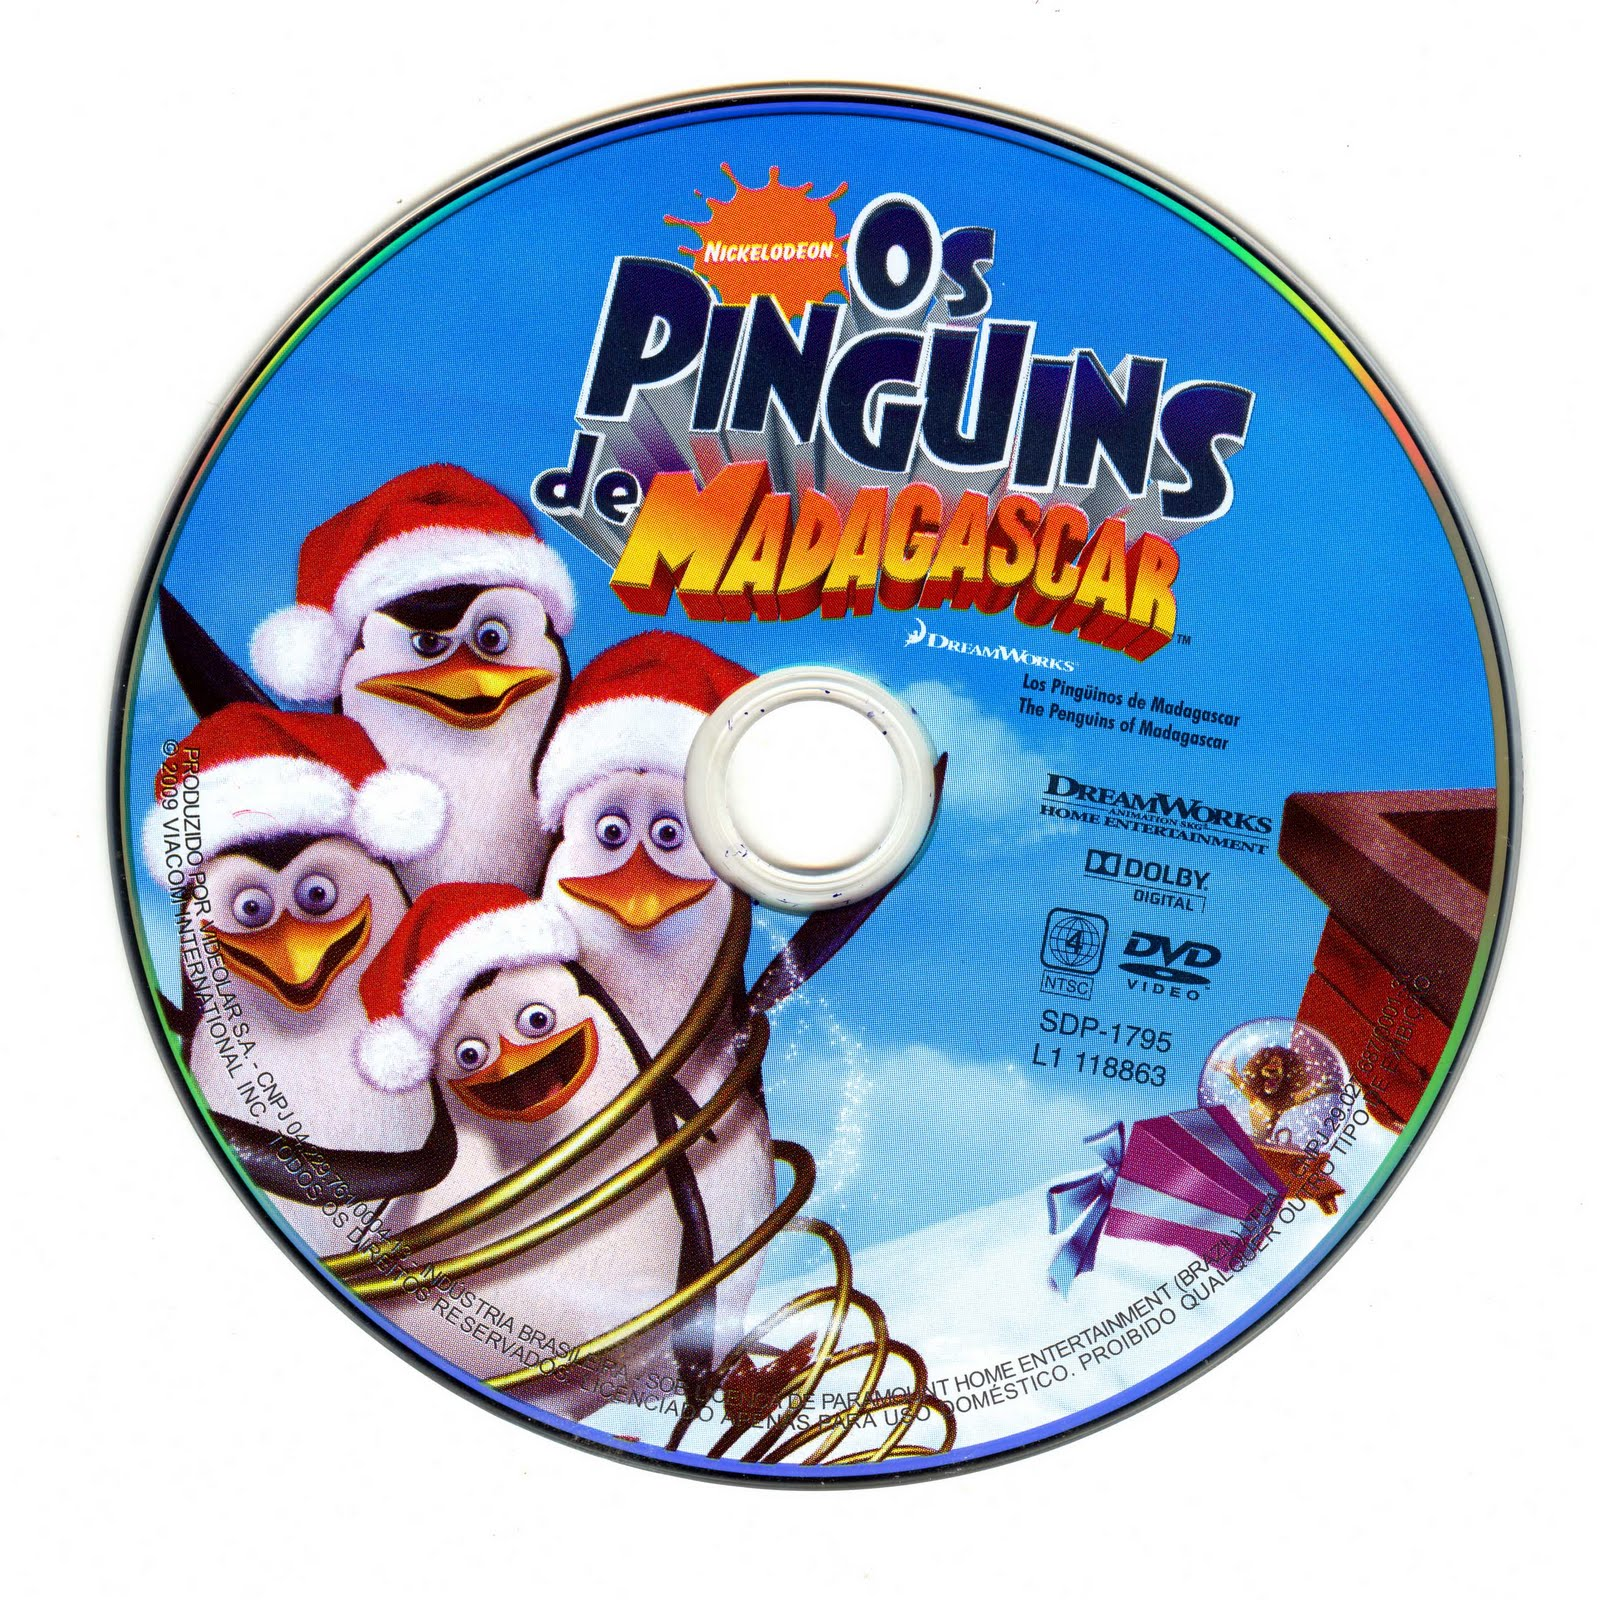 Capas De Filmes Gratis 2010: Download: Os Pinguins De